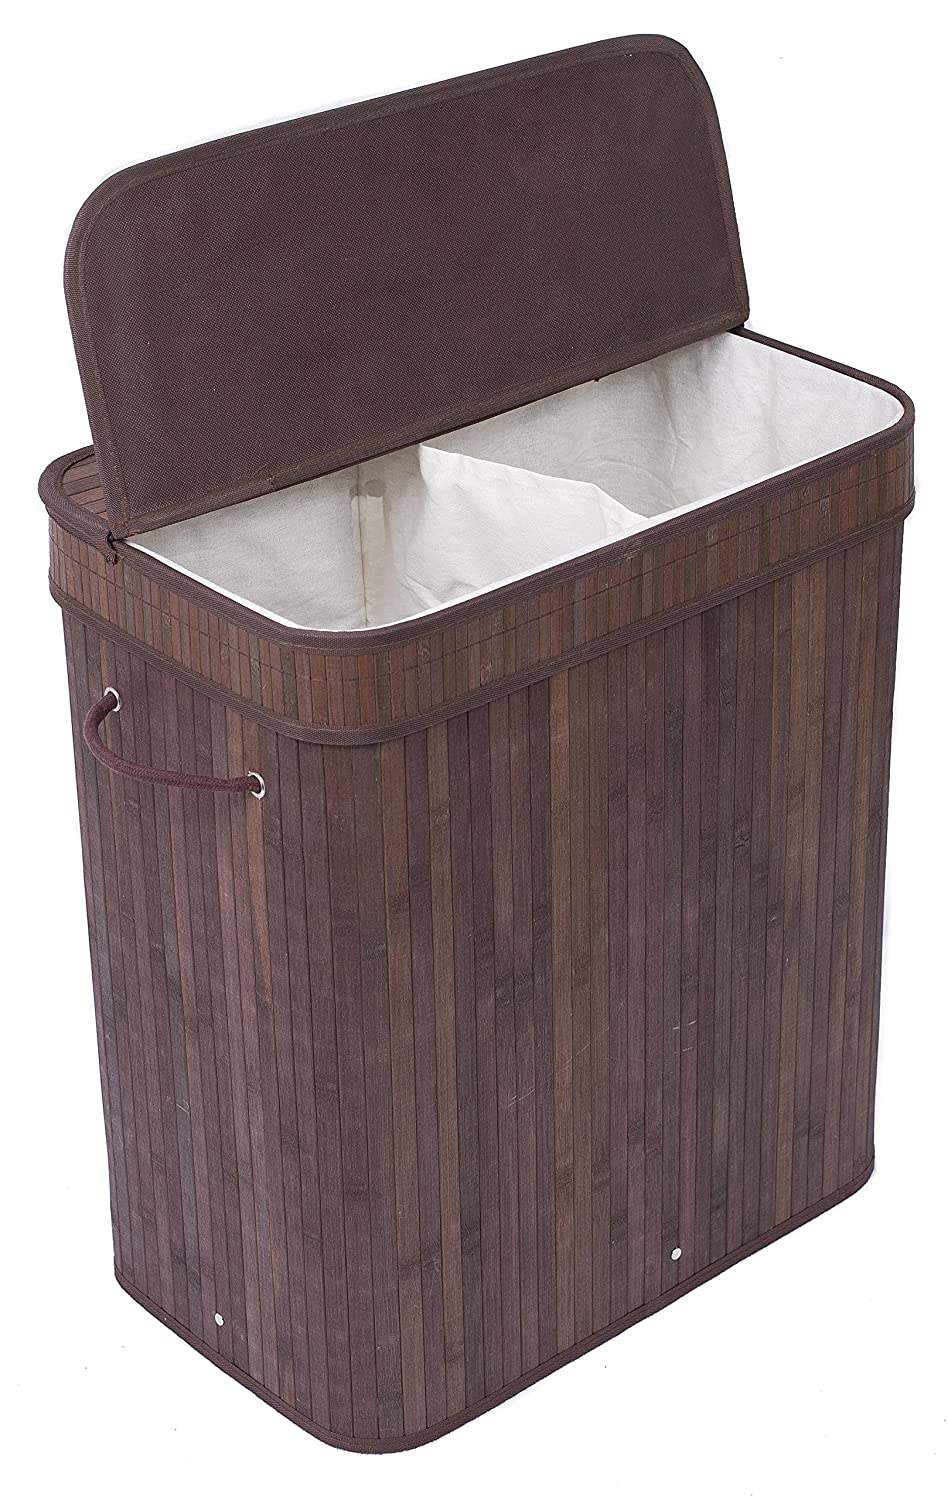 birdrock home double laundry hamper with lid and cloth liner bamboo espresso easily